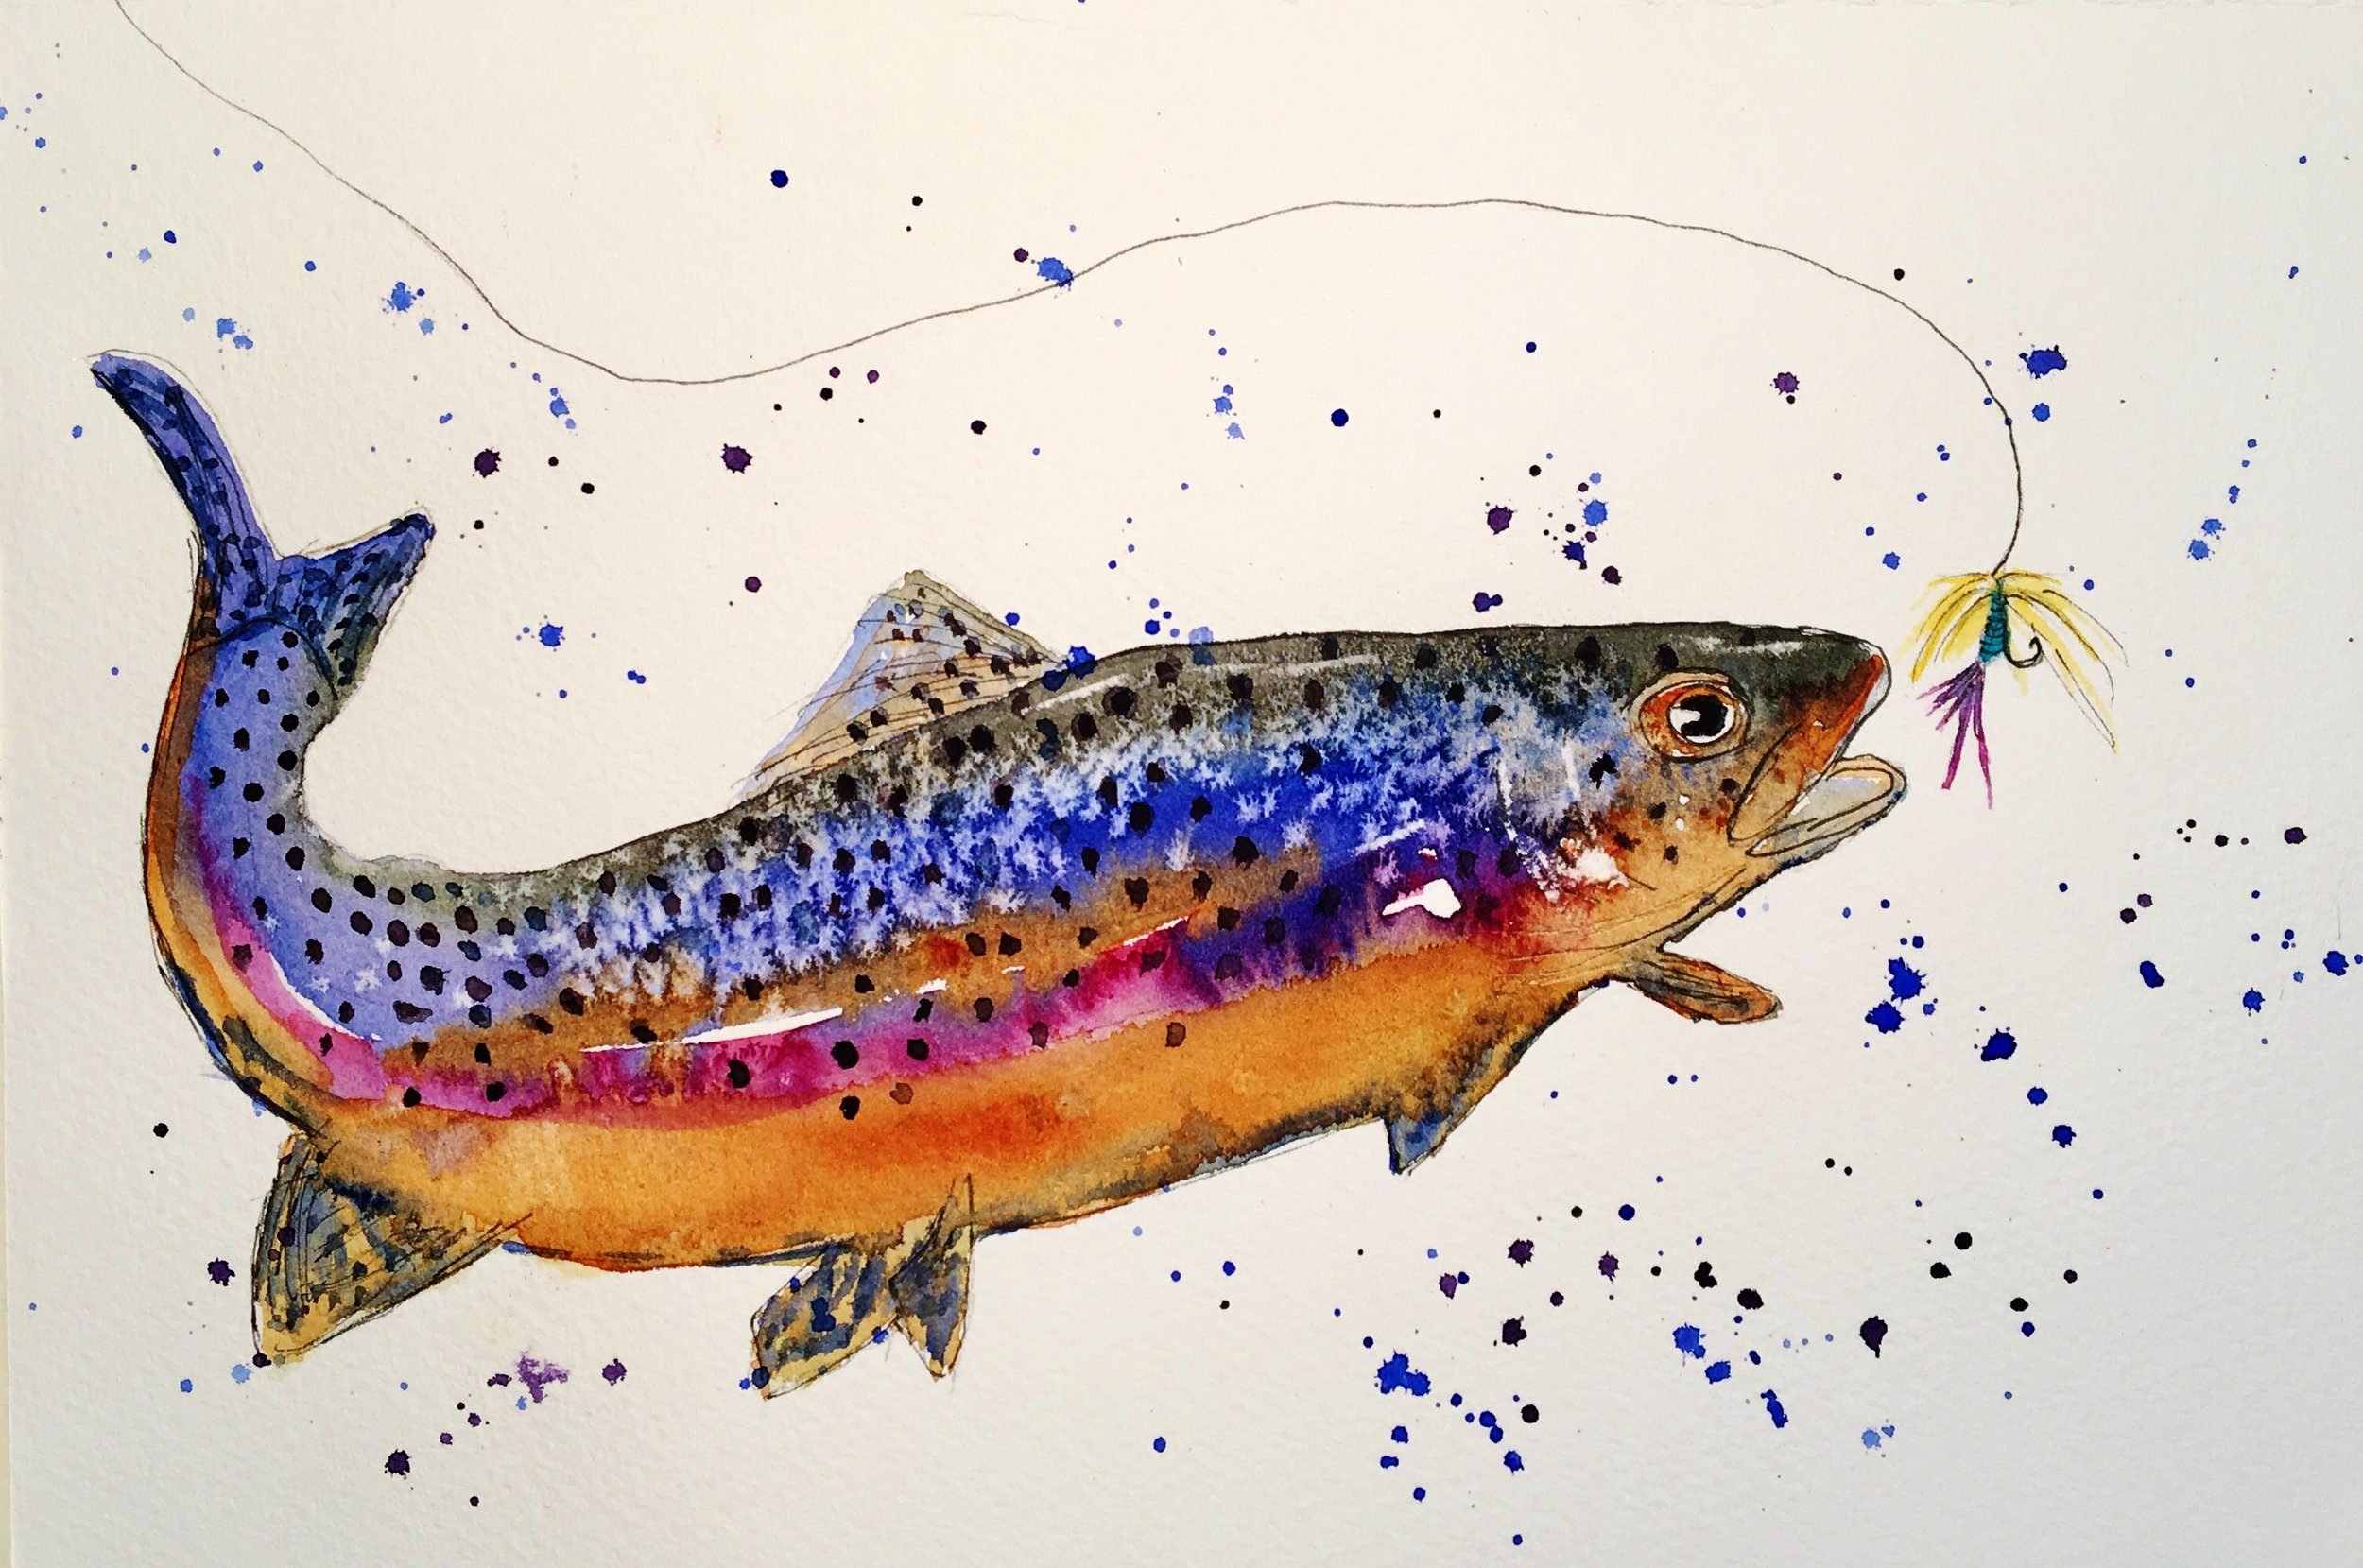 Blue rainbow trout with lure and splash.jpg